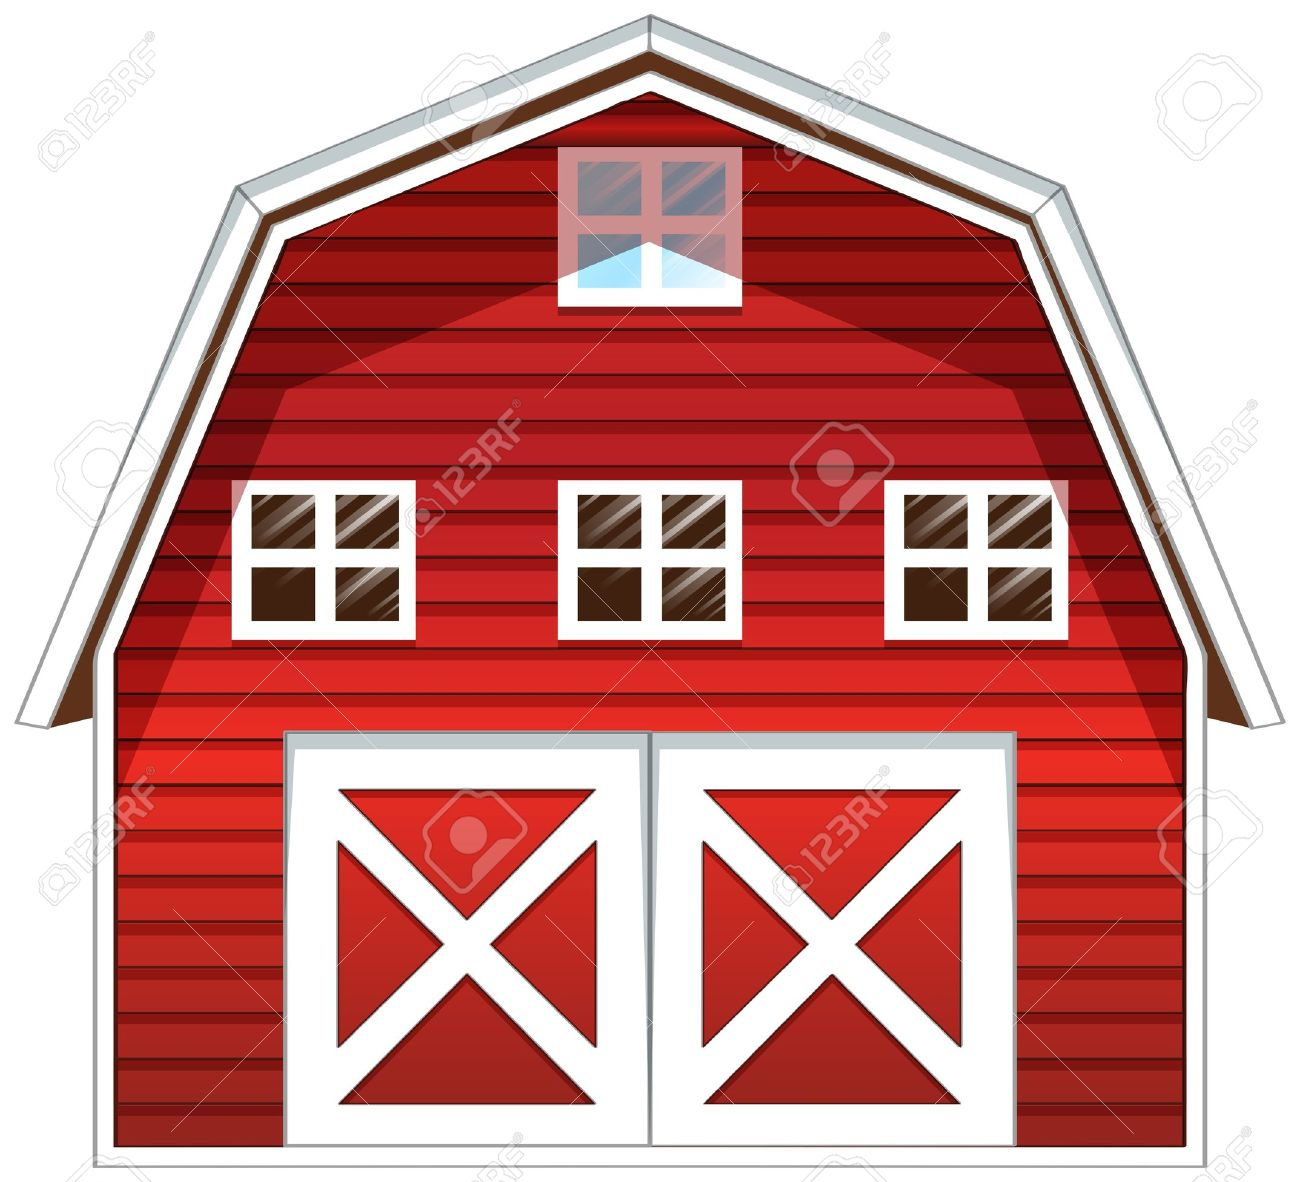 Red barn illustration of a red barn house on a white background